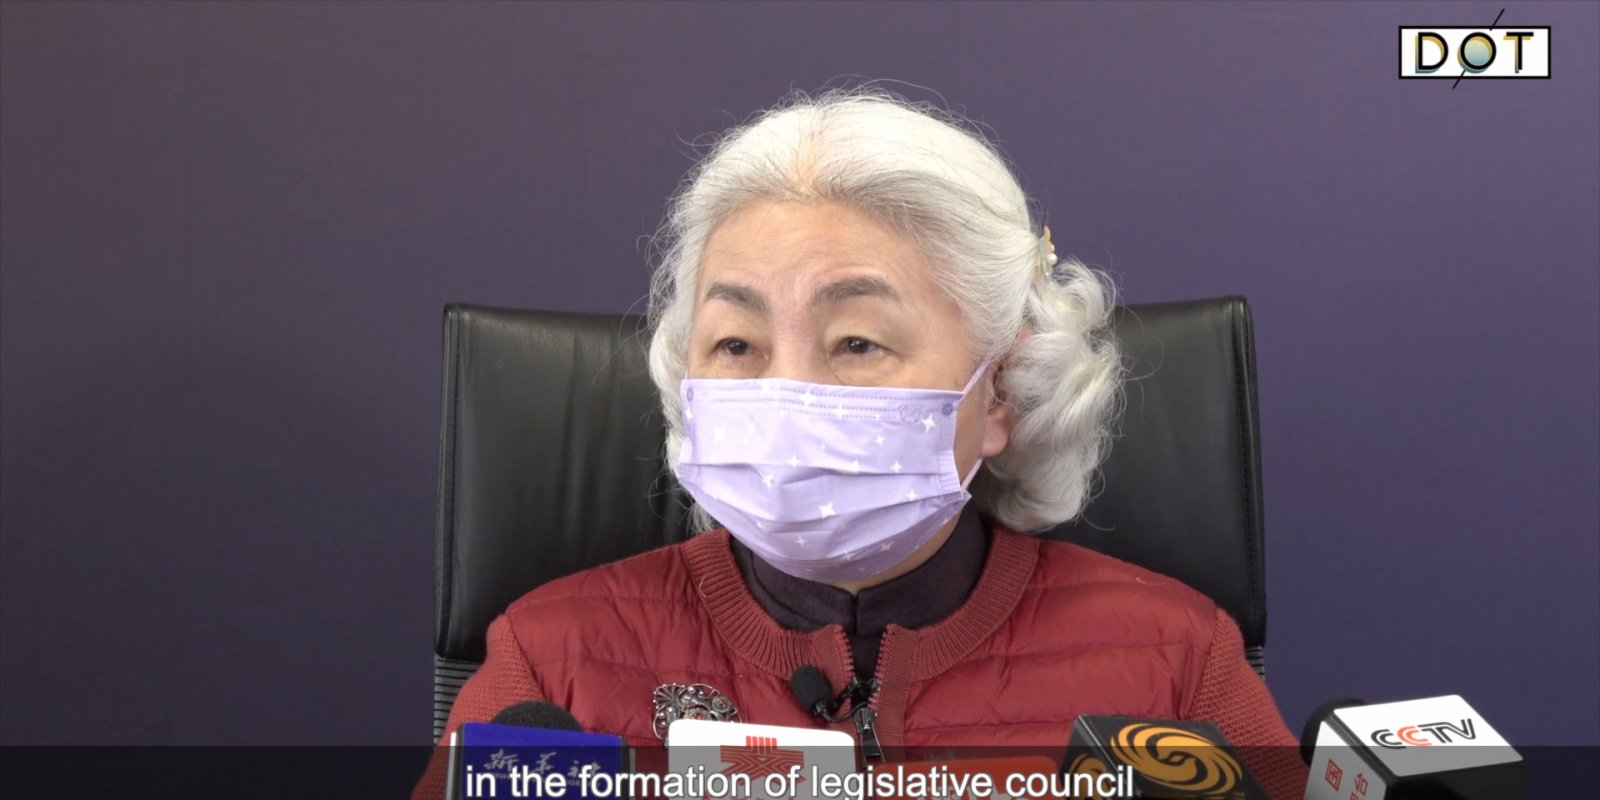 Watch This   'There may be an additional sector': Elsie Leung on improving HK's electoral system